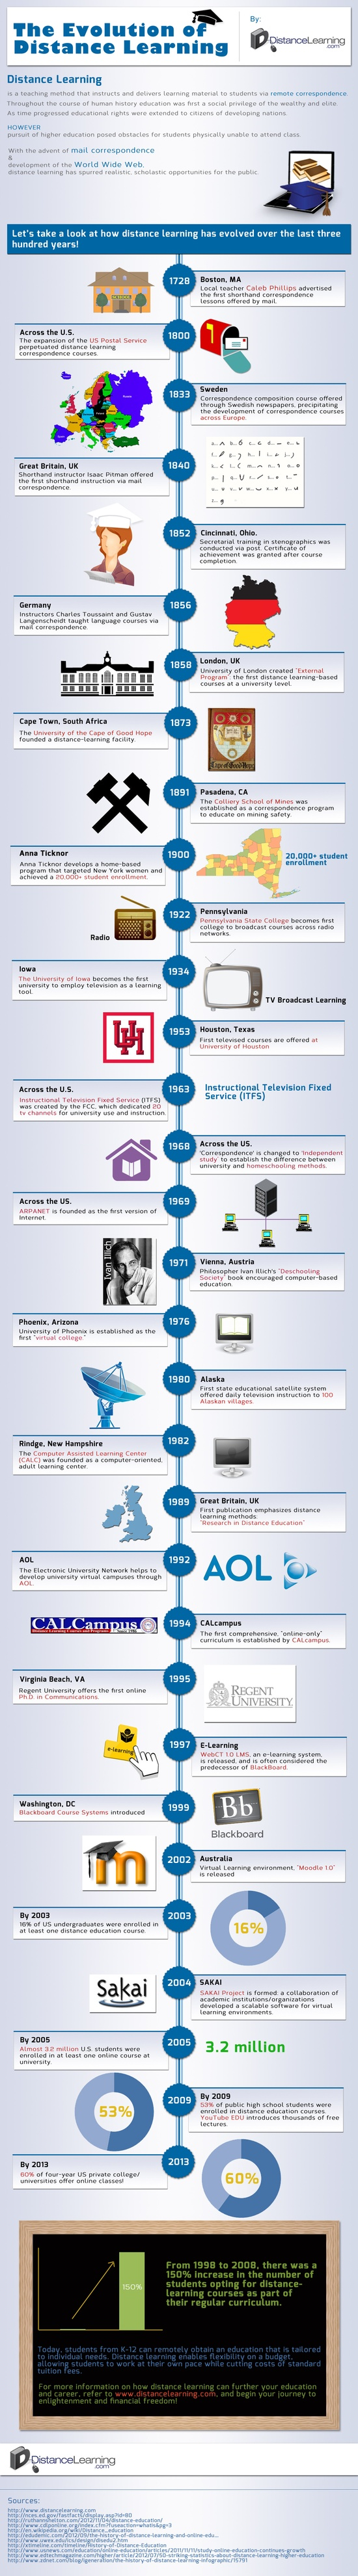 distance learning evolution